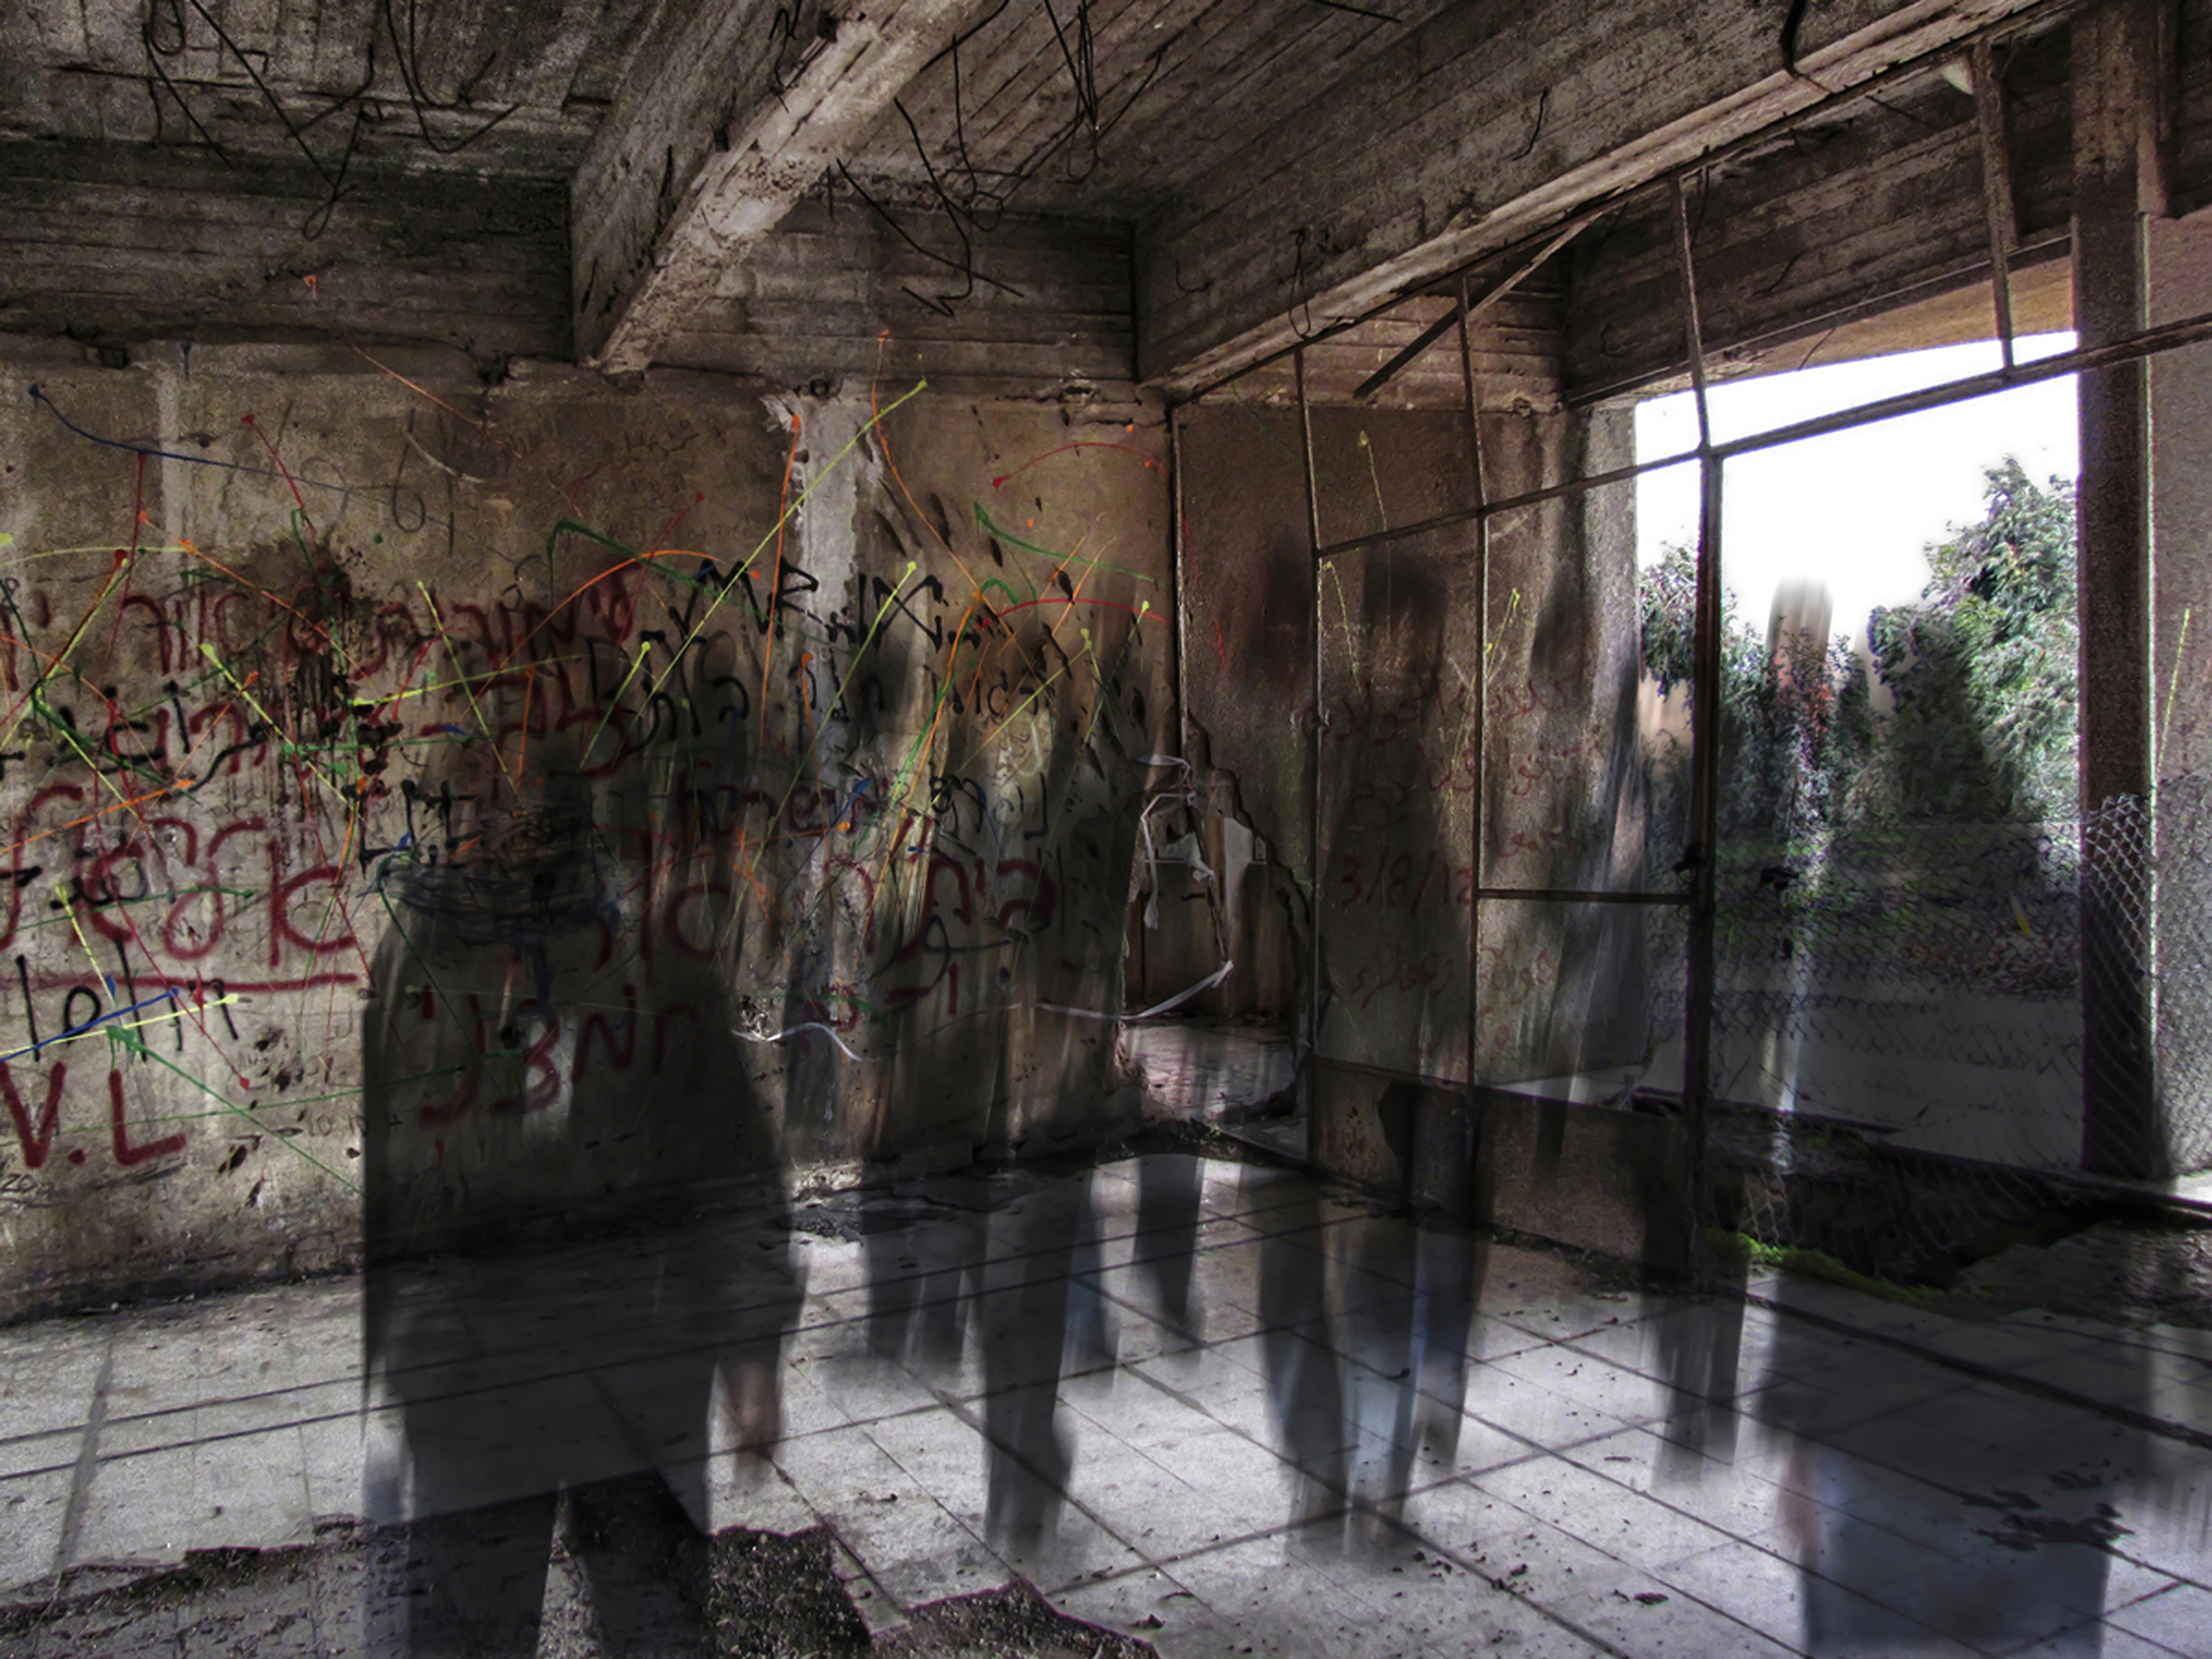 Shifra Levyathan_Ghosts of War01_Fine art photography-23.5_x17.5_.jpg